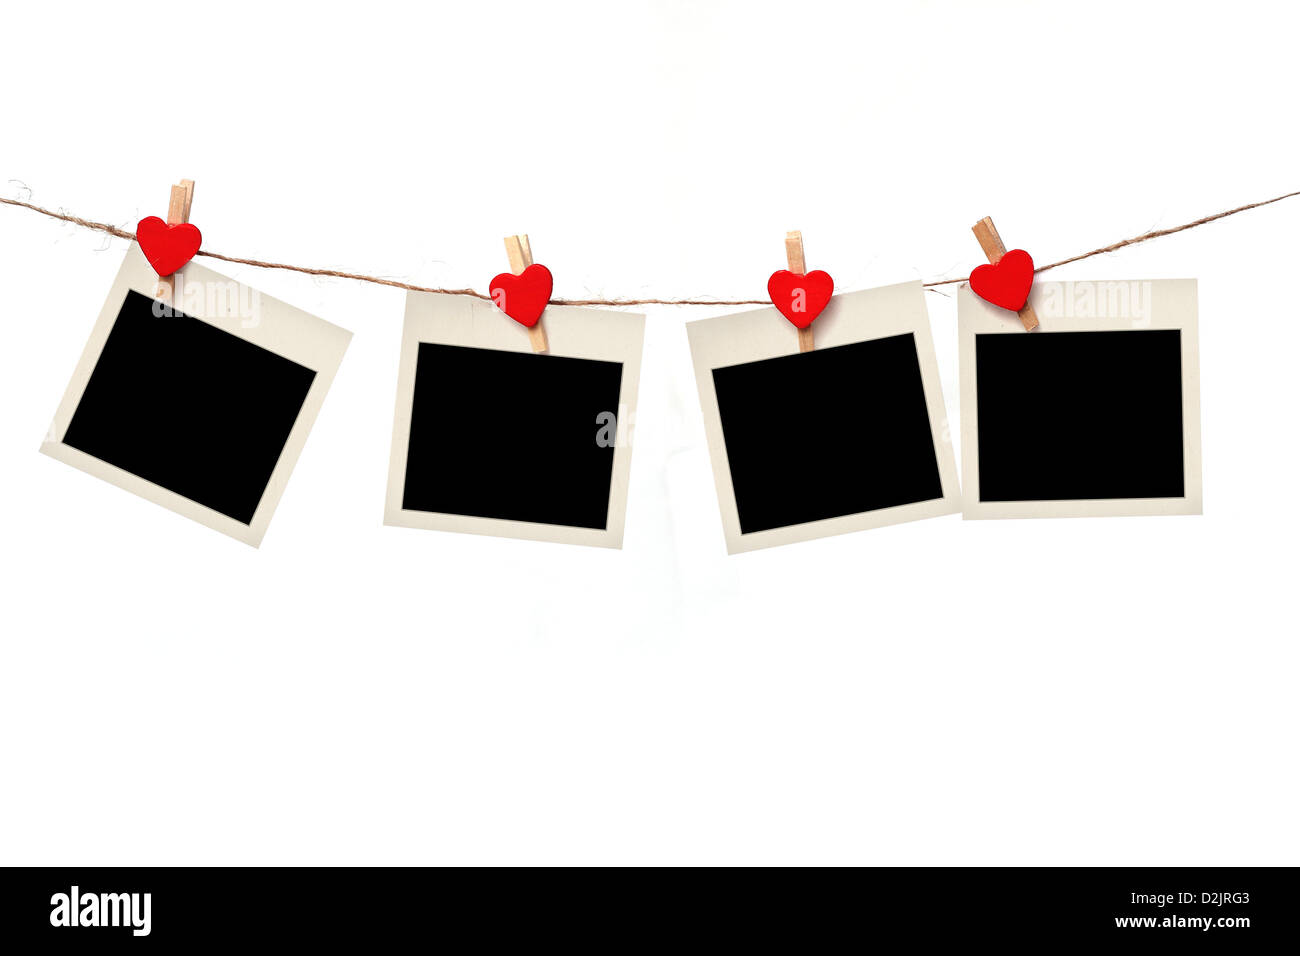 blank instant photos hanging on the clothesline. Isolated on white background. - Stock Image